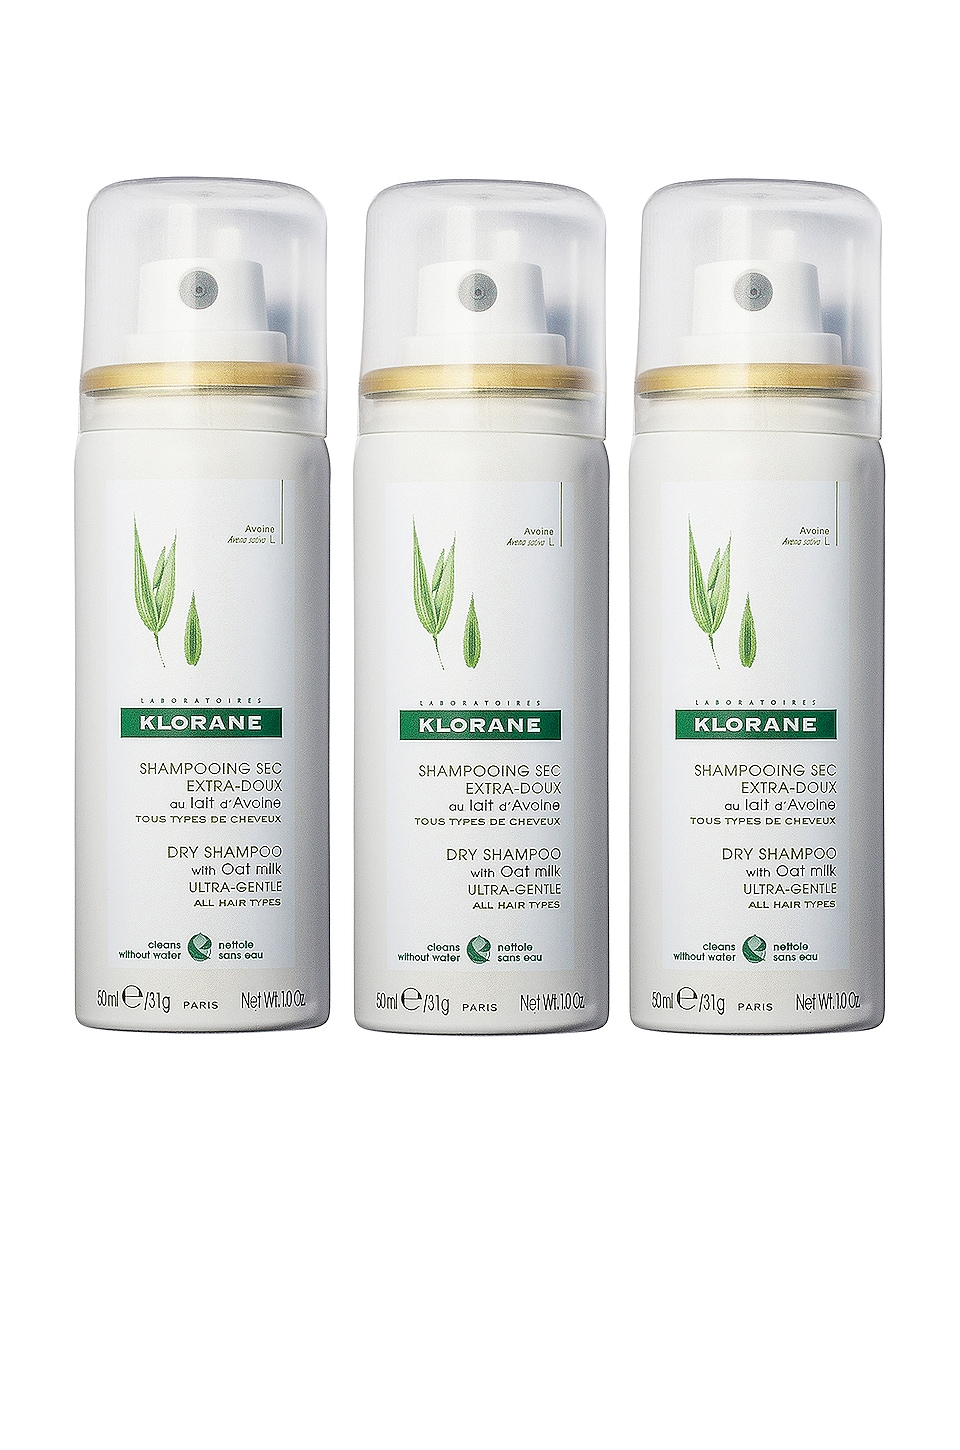 Klorane Spray Slay Repeat Dry Shampoo Kit